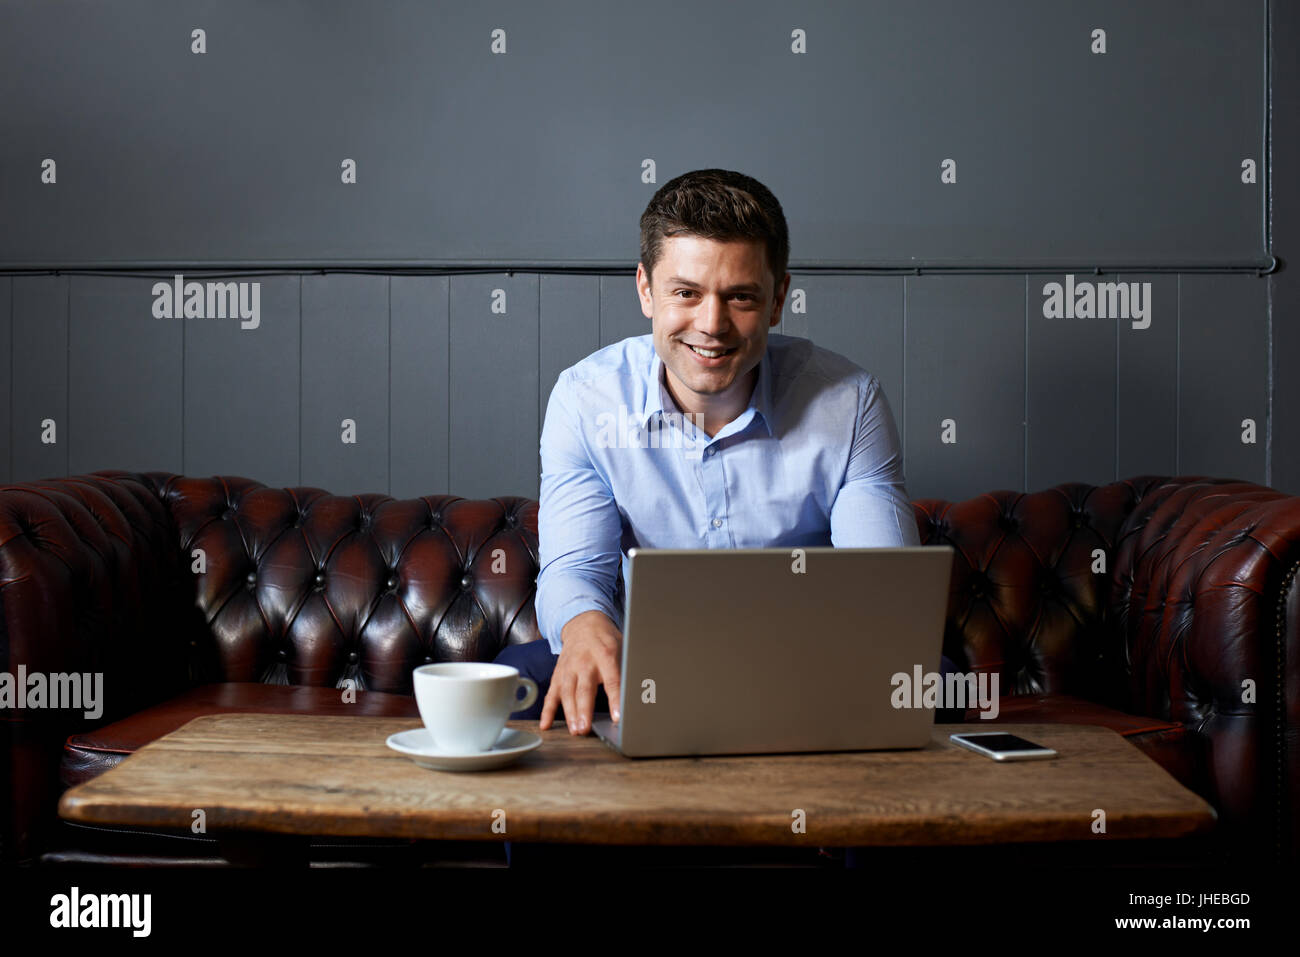 Portrait Of Businessman Working On Laptop In Internet Cafe - Stock Image